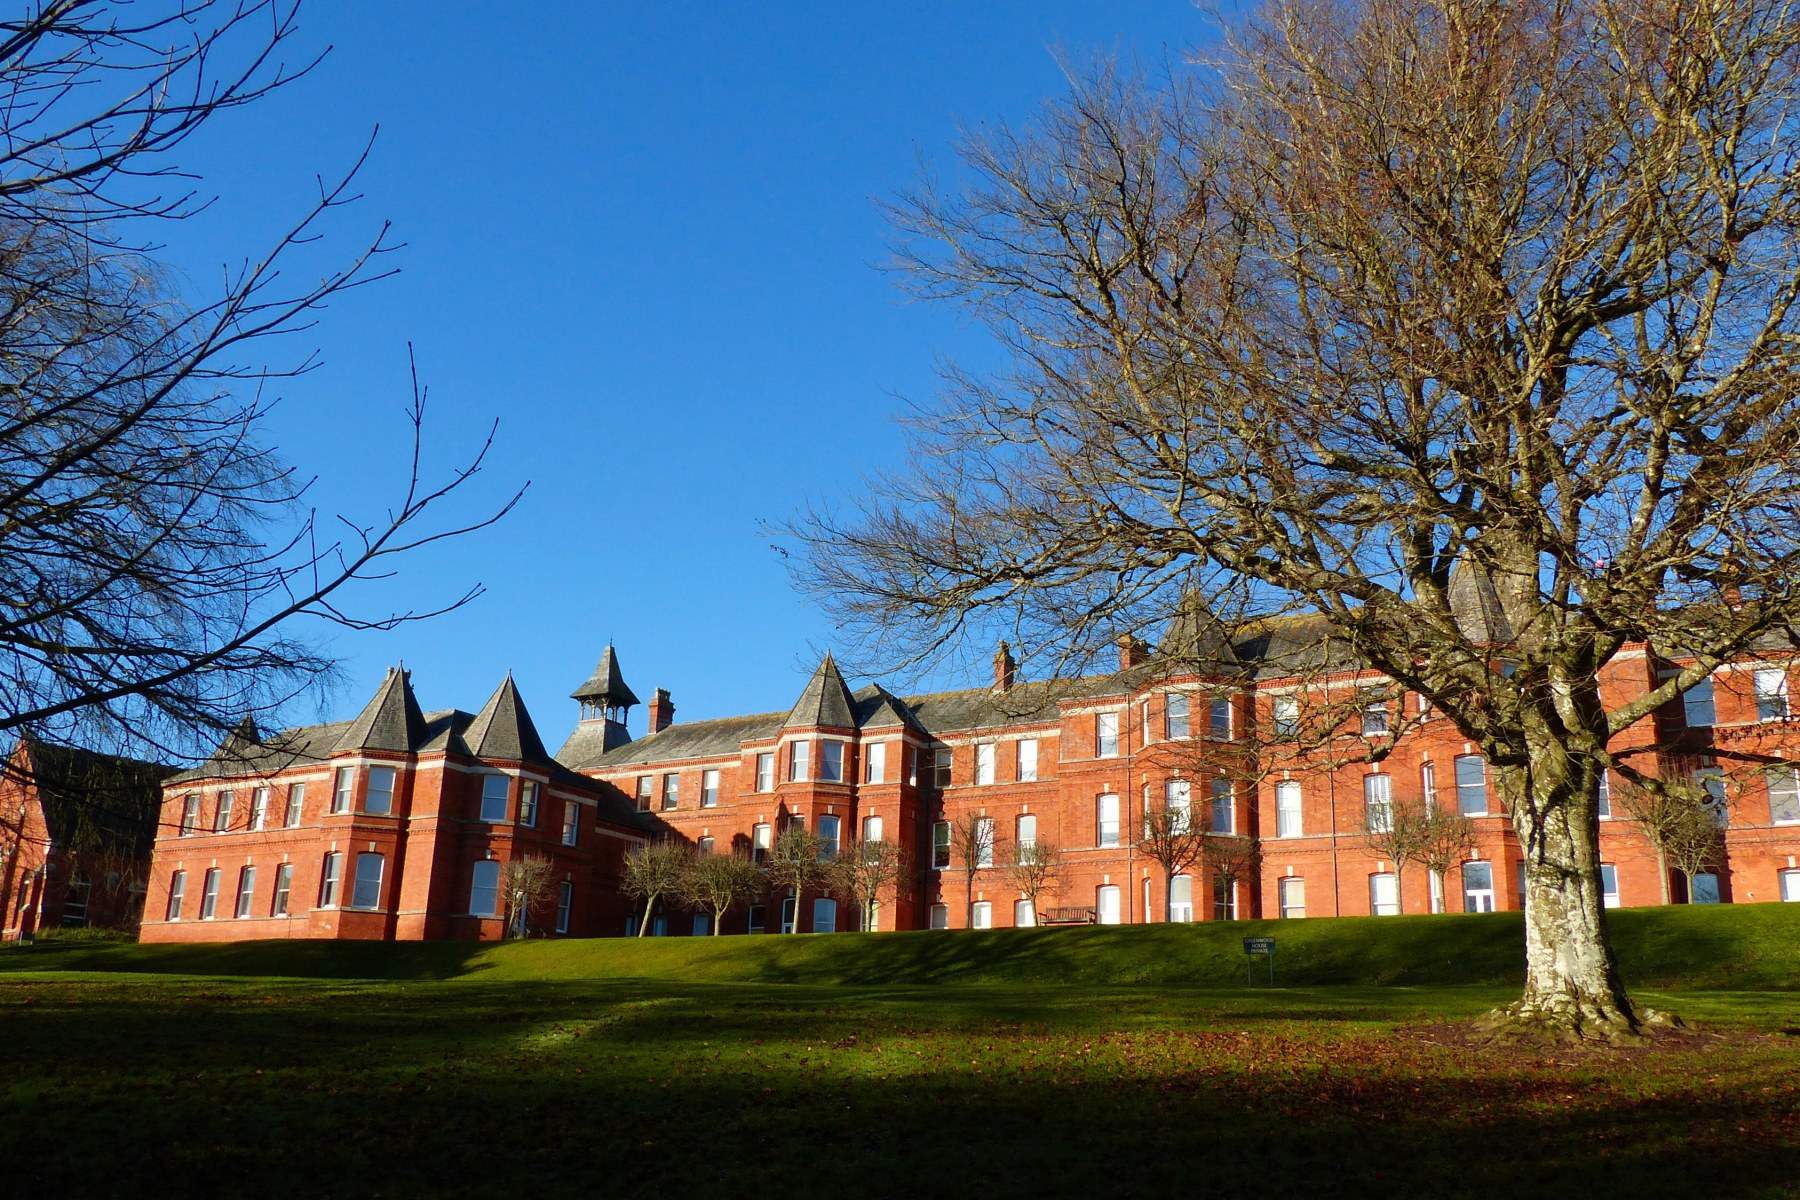 South face of Greenwood House in Charlton Down in winter